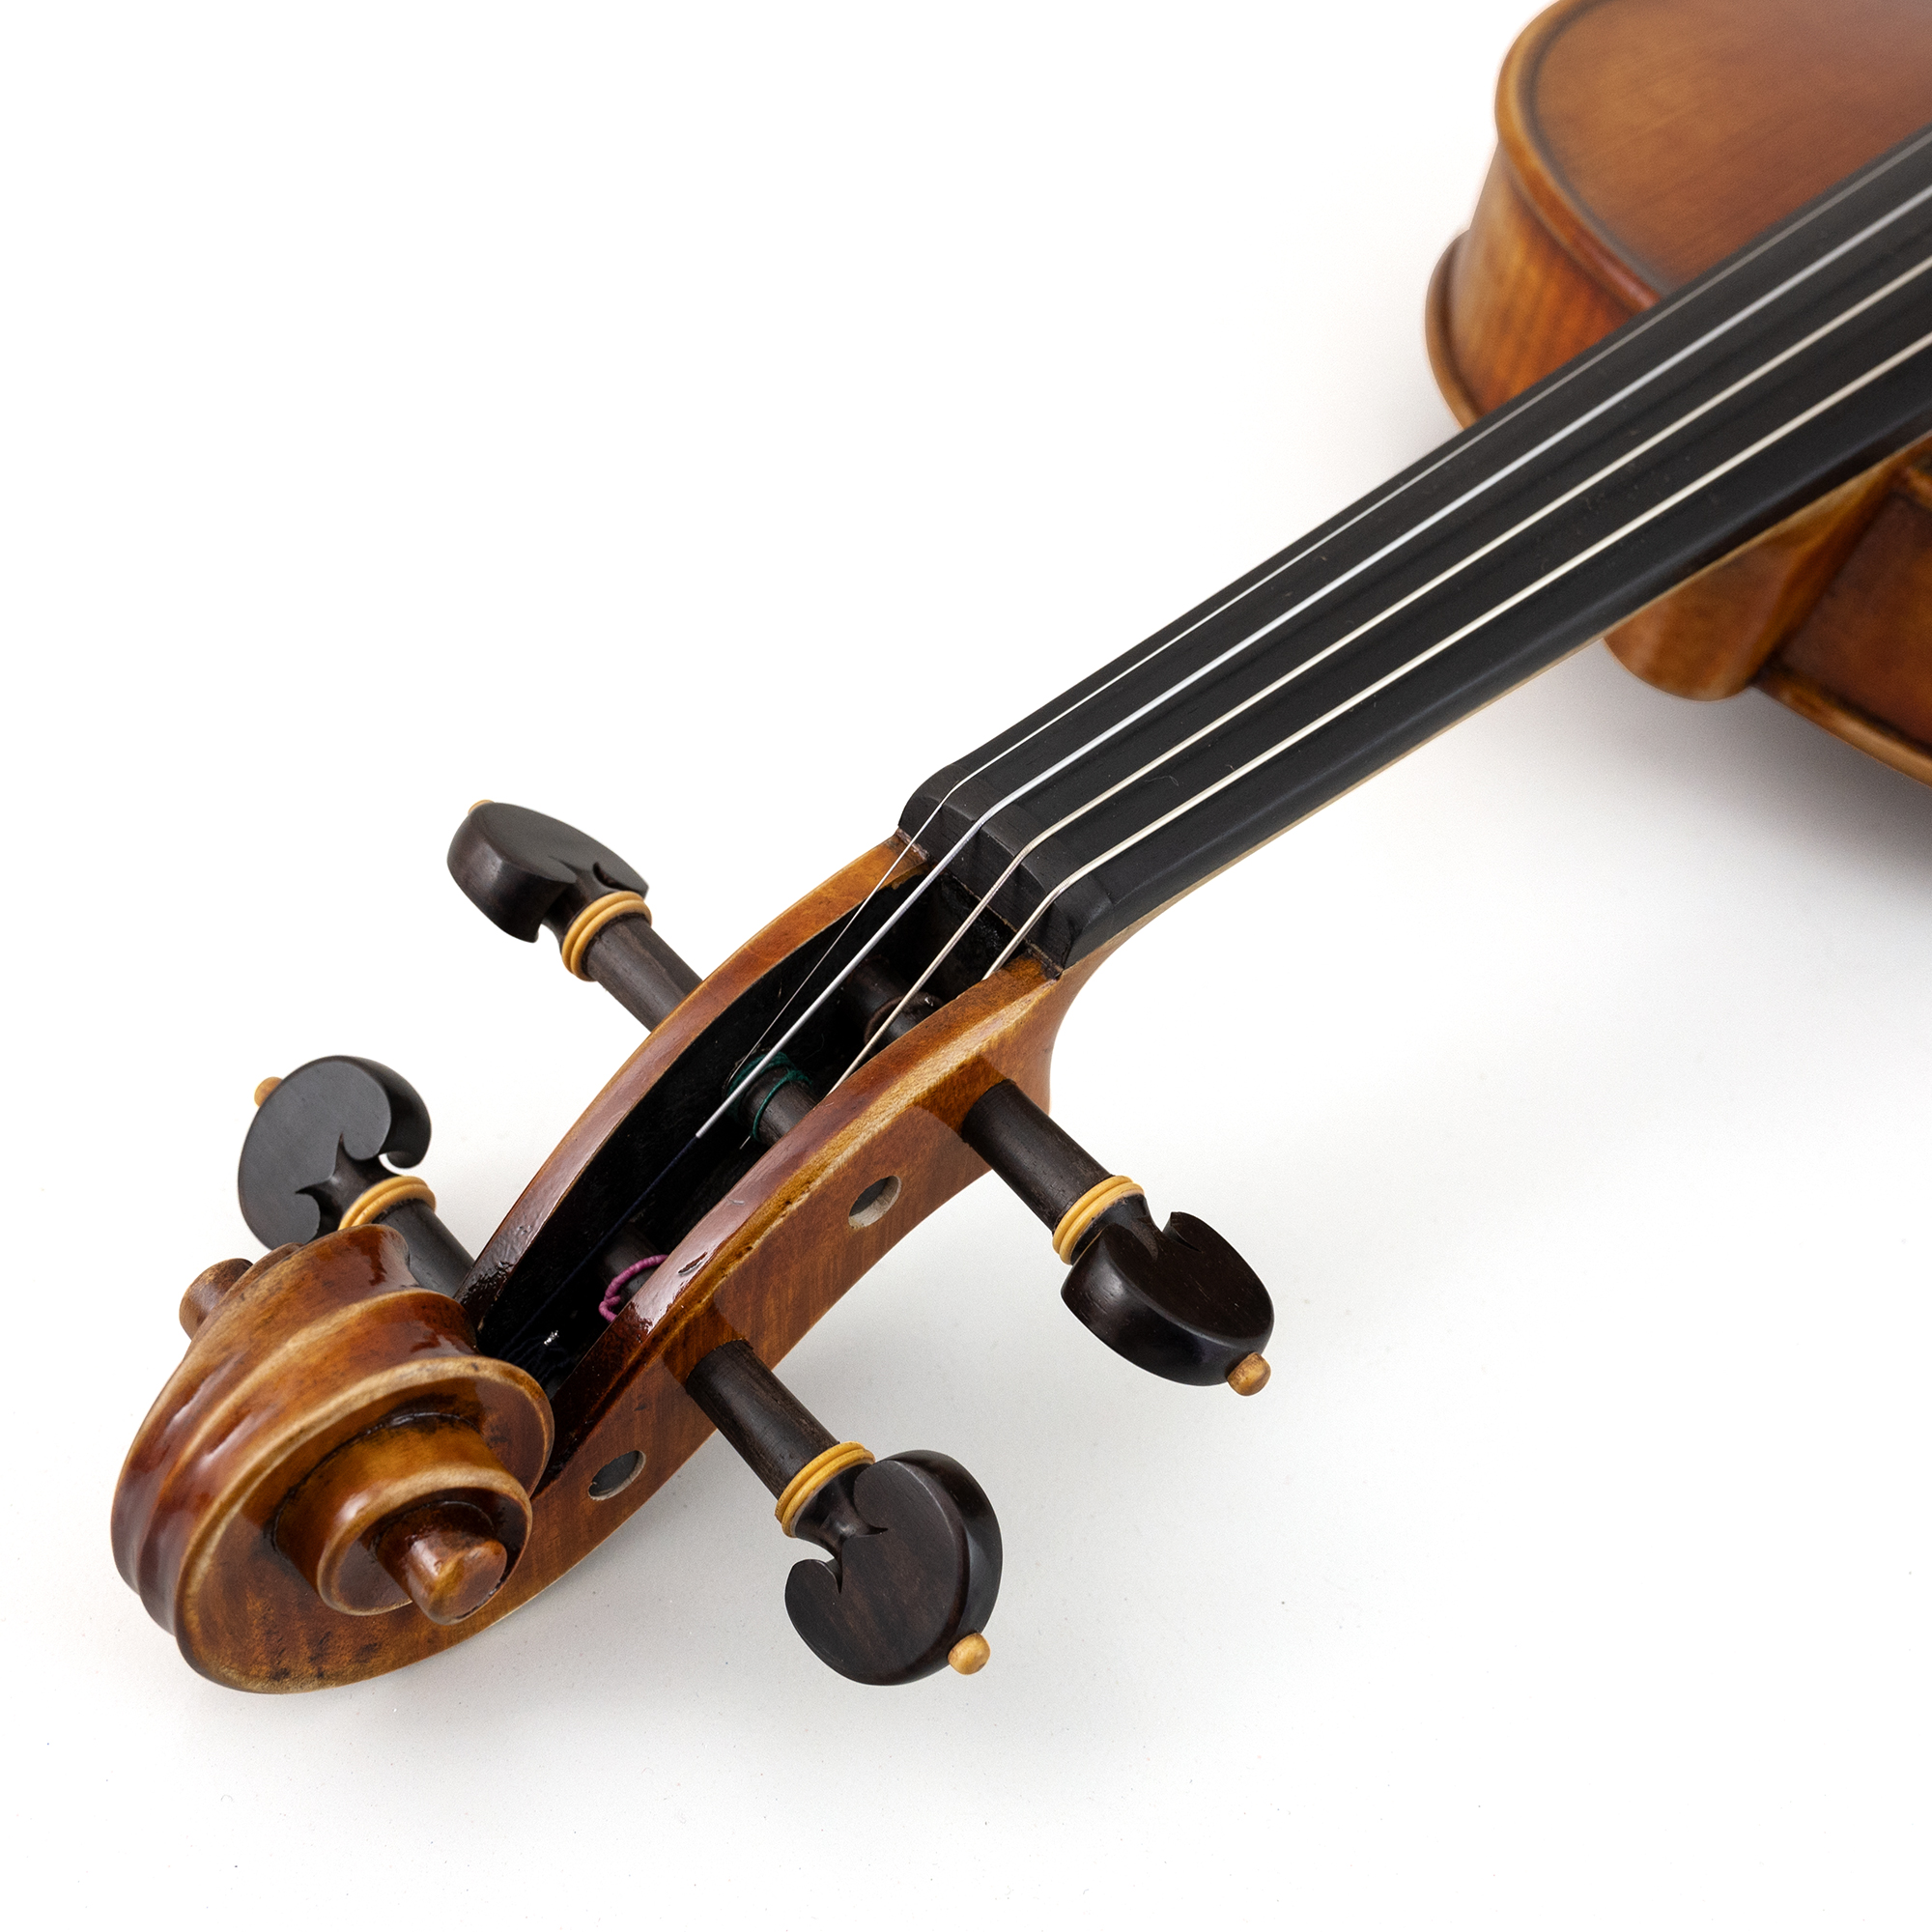 CLEARANCE Zubak Soloist Violin Outfit in action